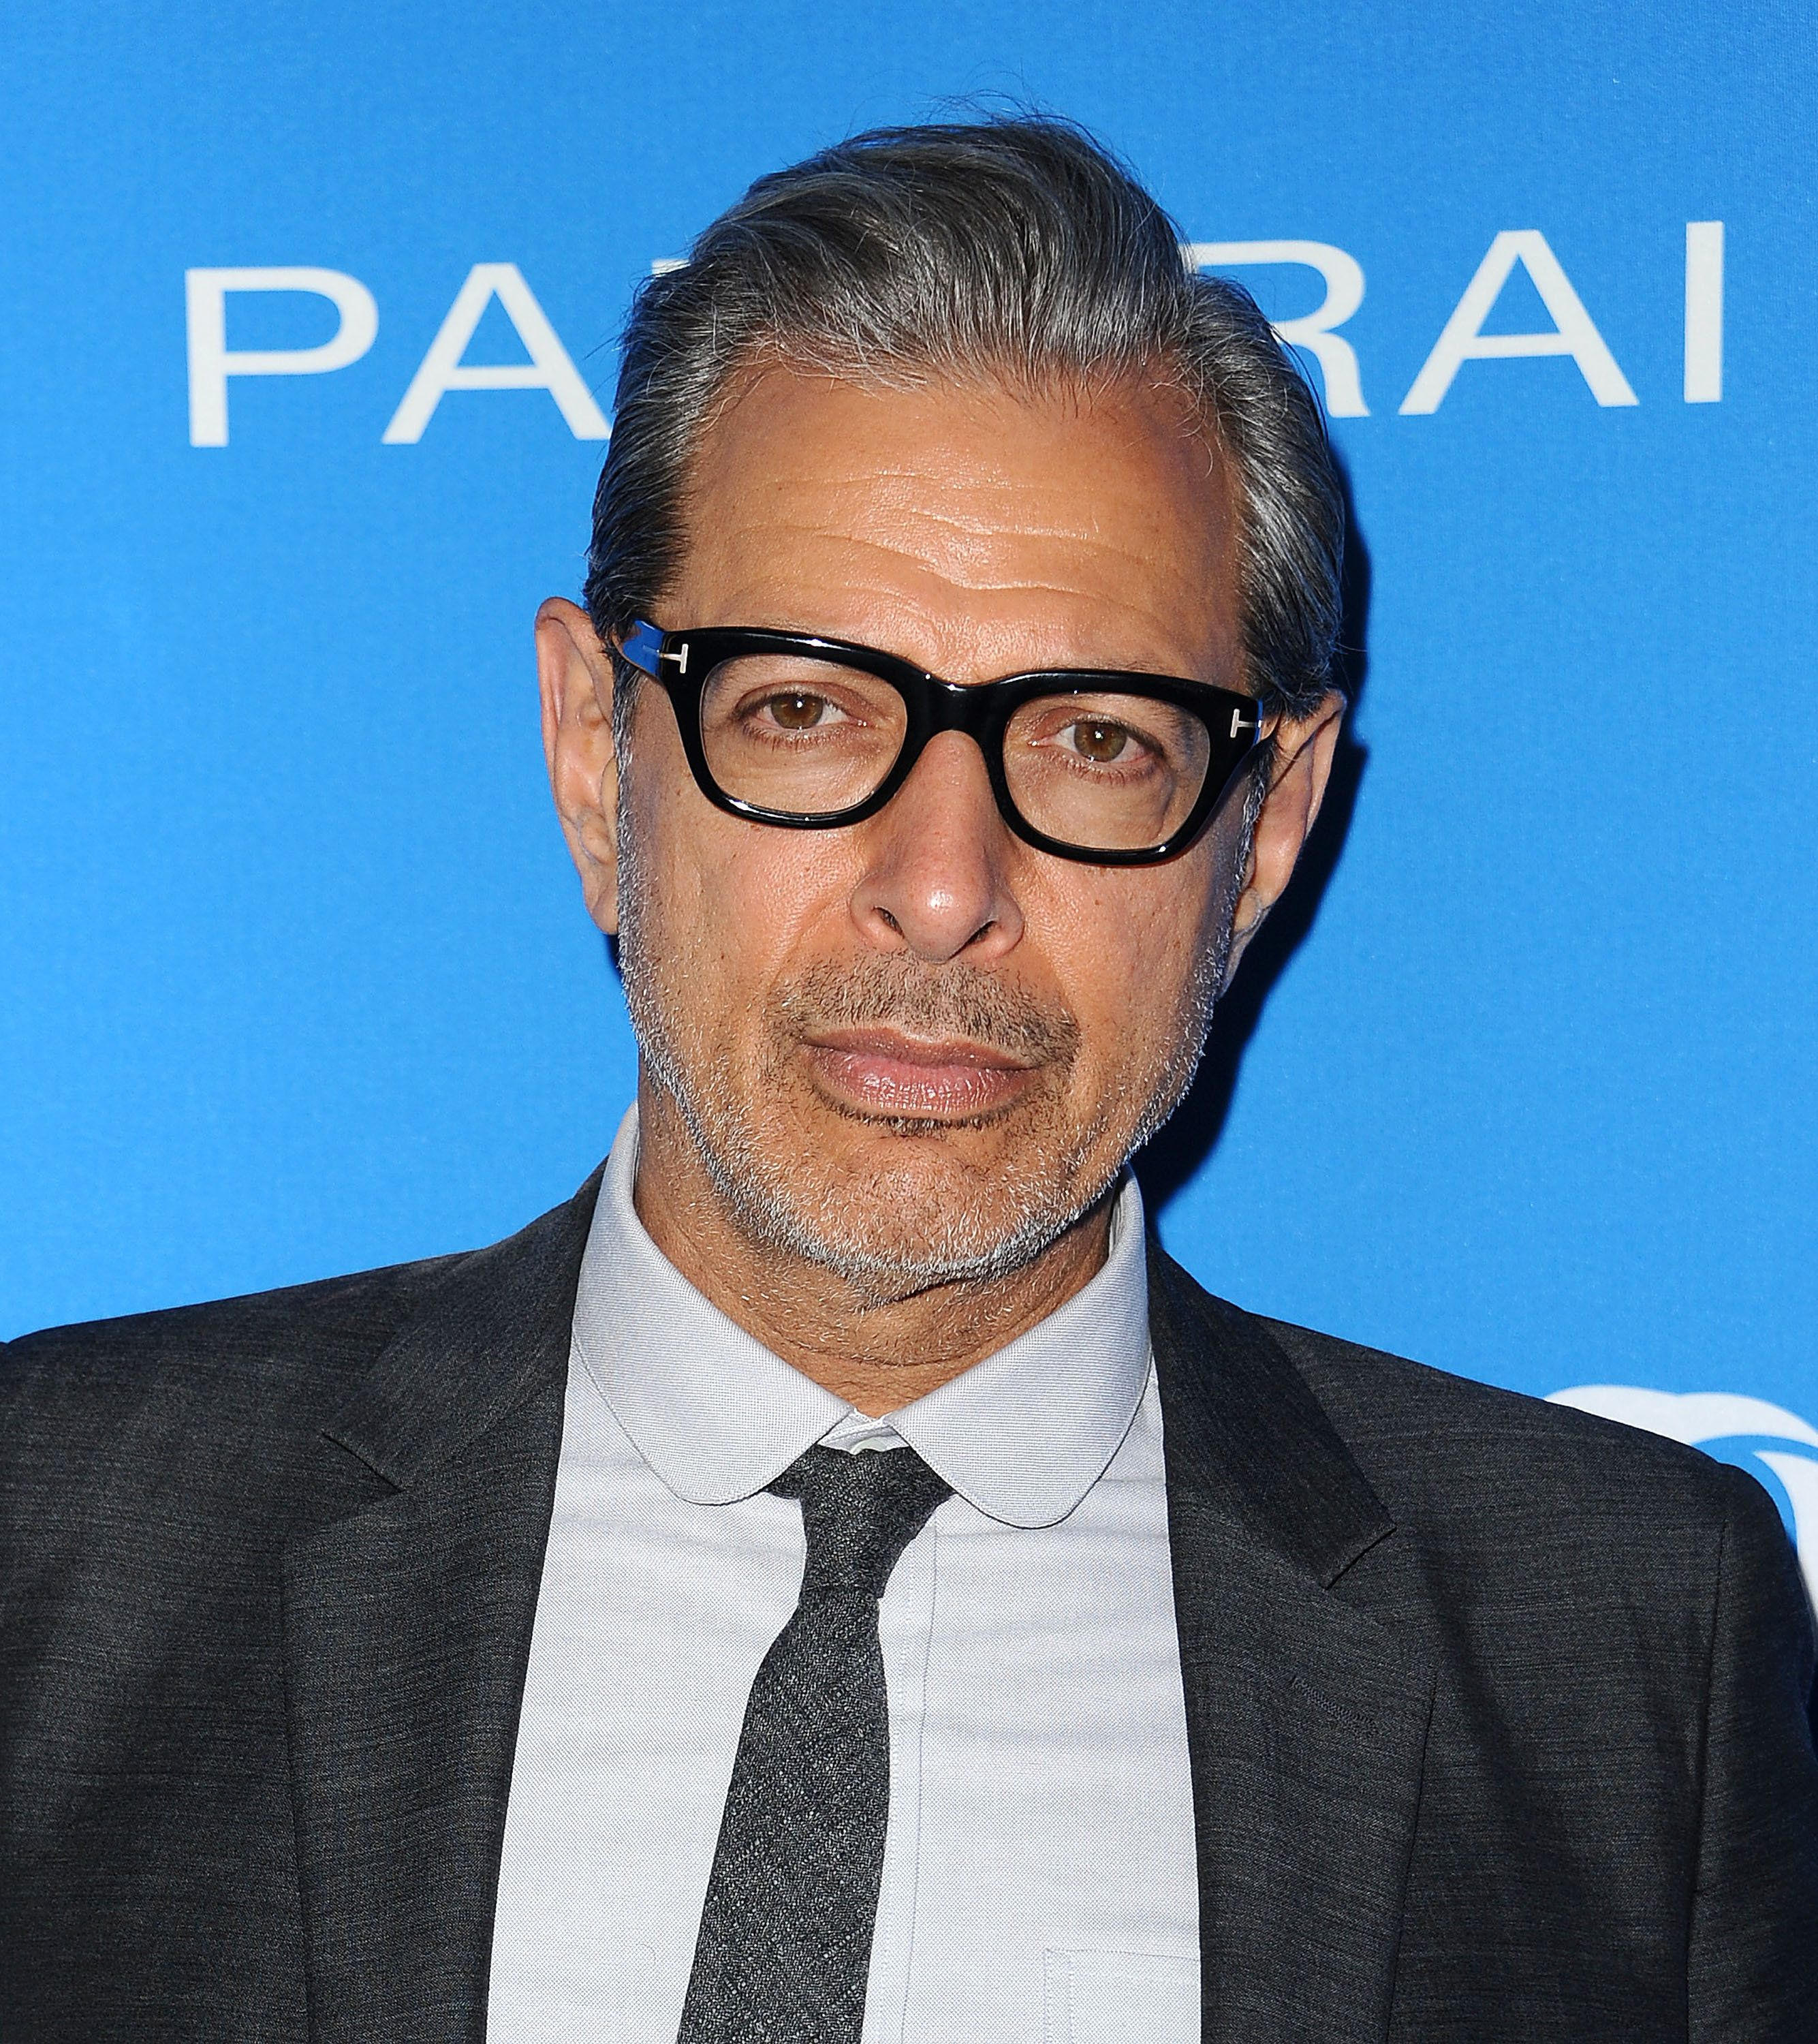 LOS ANGELES, CA - JULY 19:  Actor Jeff Goldblum attends Oceana: Sting Under the Stars on July 18, 2016 in Los Angeles, California.  (Photo by Jason LaVeris/FilmMagic)